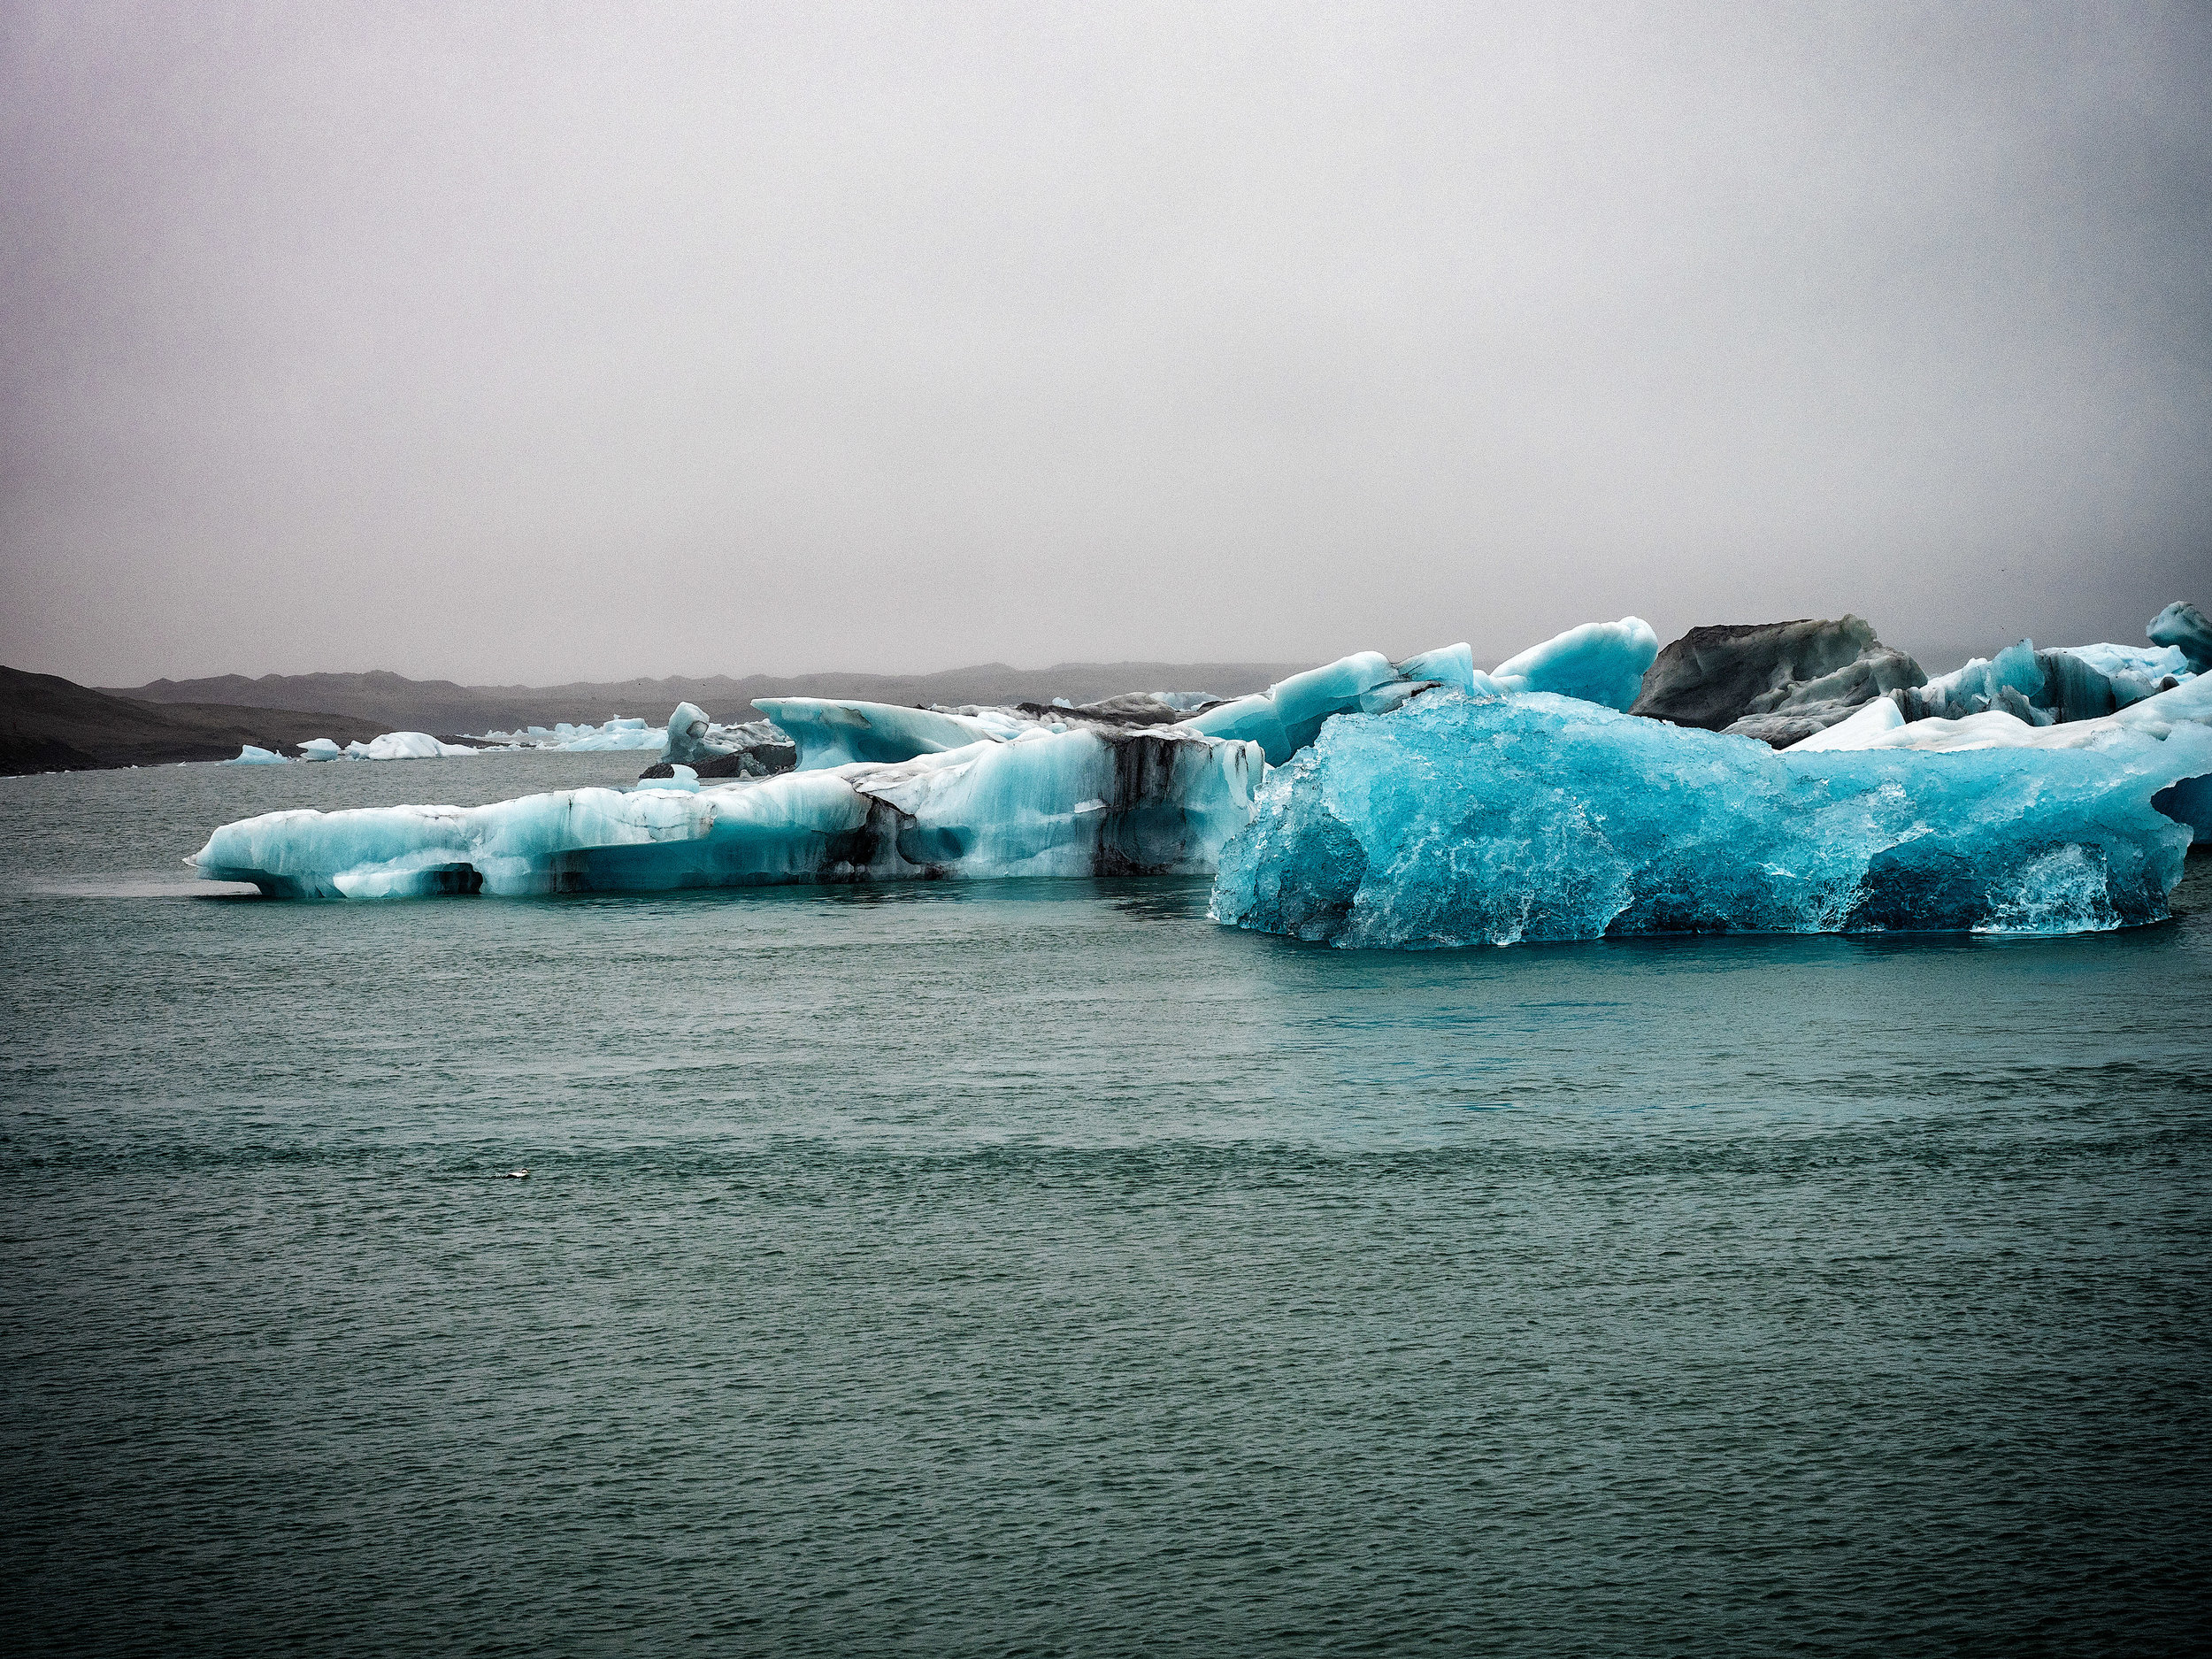 Jokulsarlon - The big iceberg calving lagoon